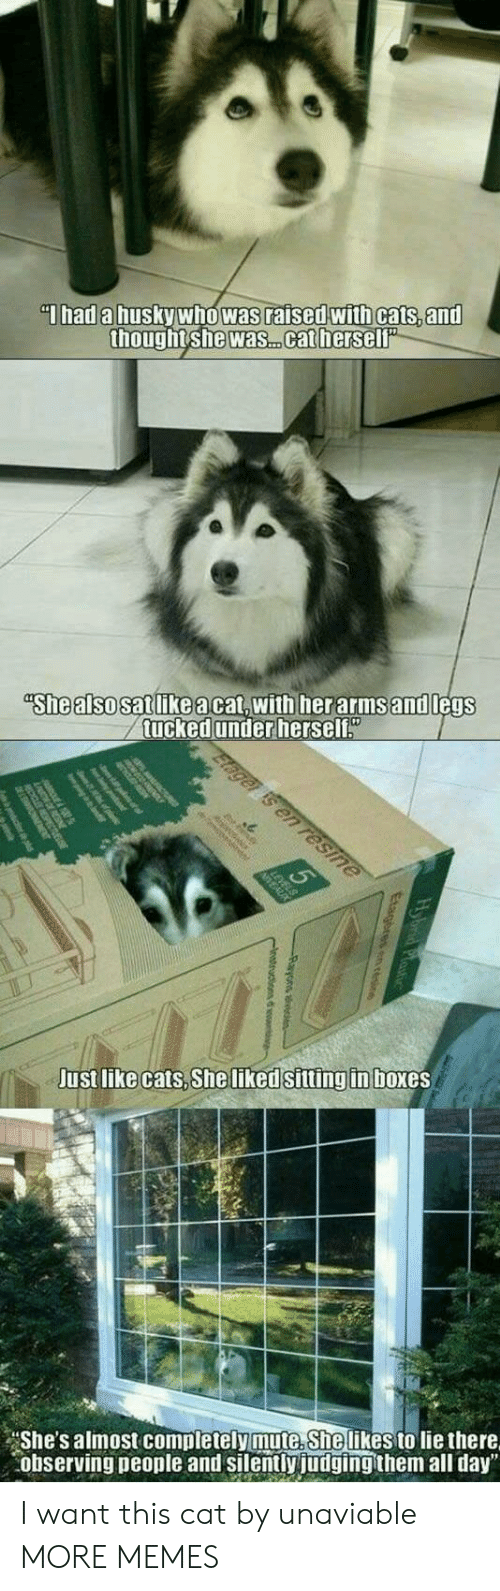 "Cats, Dank, and Memes: Thad a husky who was raised with cats, and  thought she was. .cat herself""  ""She also satlikeacat,with herarmsand legs  tucked under herself""  Elager is en resine  Just like cats, She liked sitting in boxes  She's almost completely mute. She likes to lie there  observing people and silently judging them all day"" I want this cat by unaviable MORE MEMES"